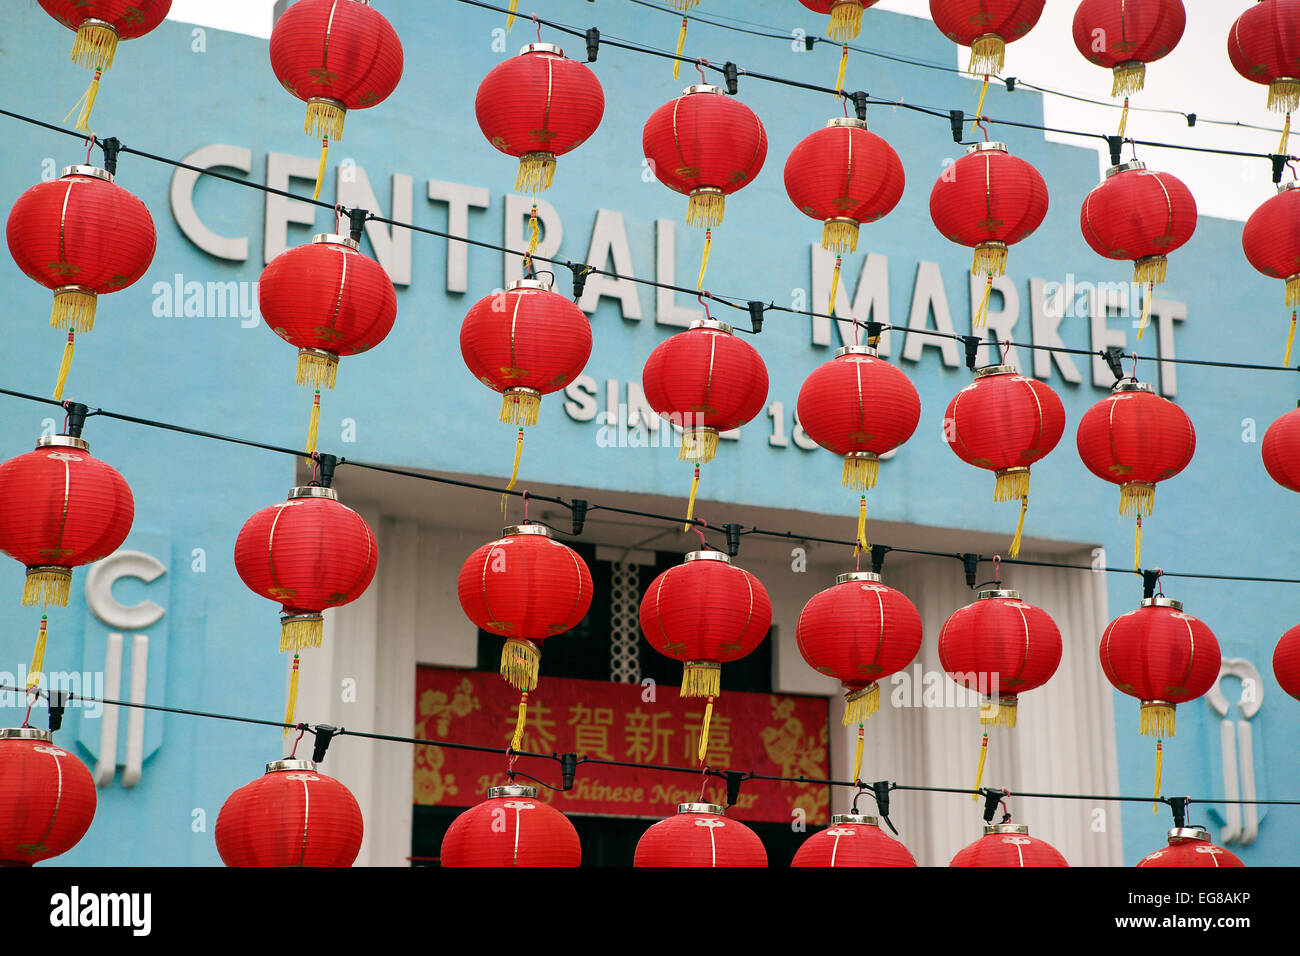 Red lanterns hanging outside the Central Market in Chinatown for Chinese New Year celebrations Stock Photo